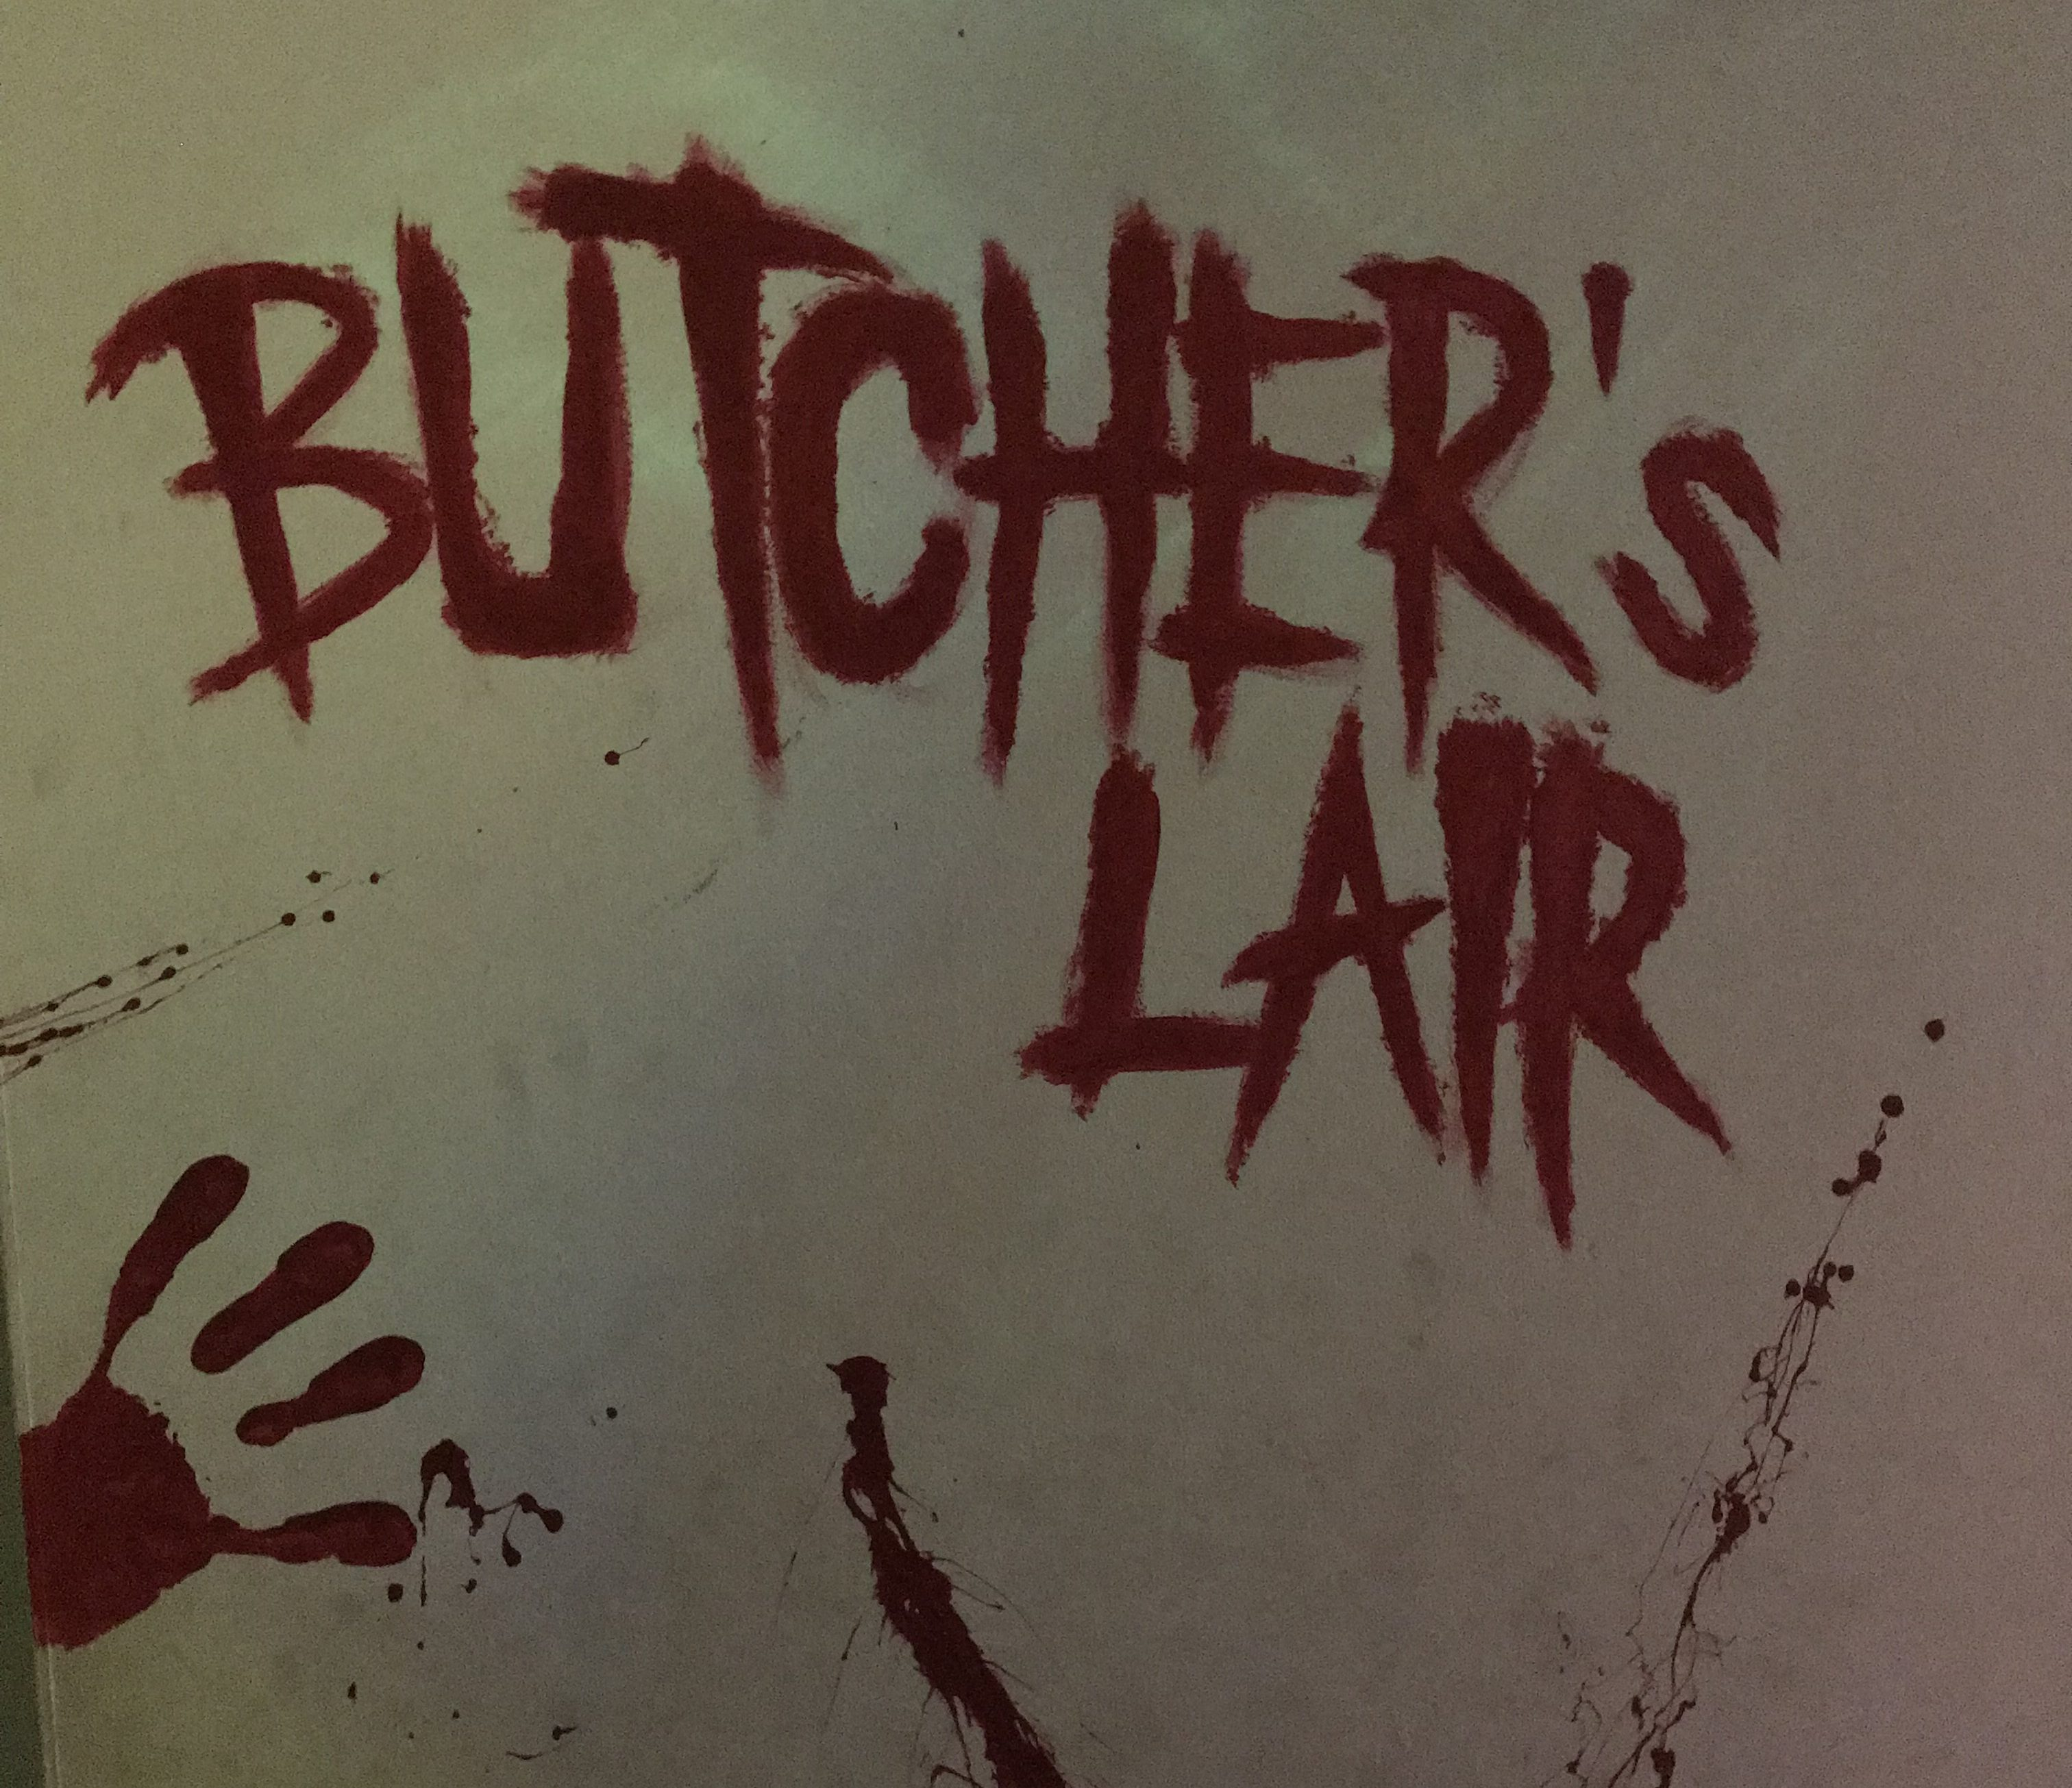 butchers liar escape rooms